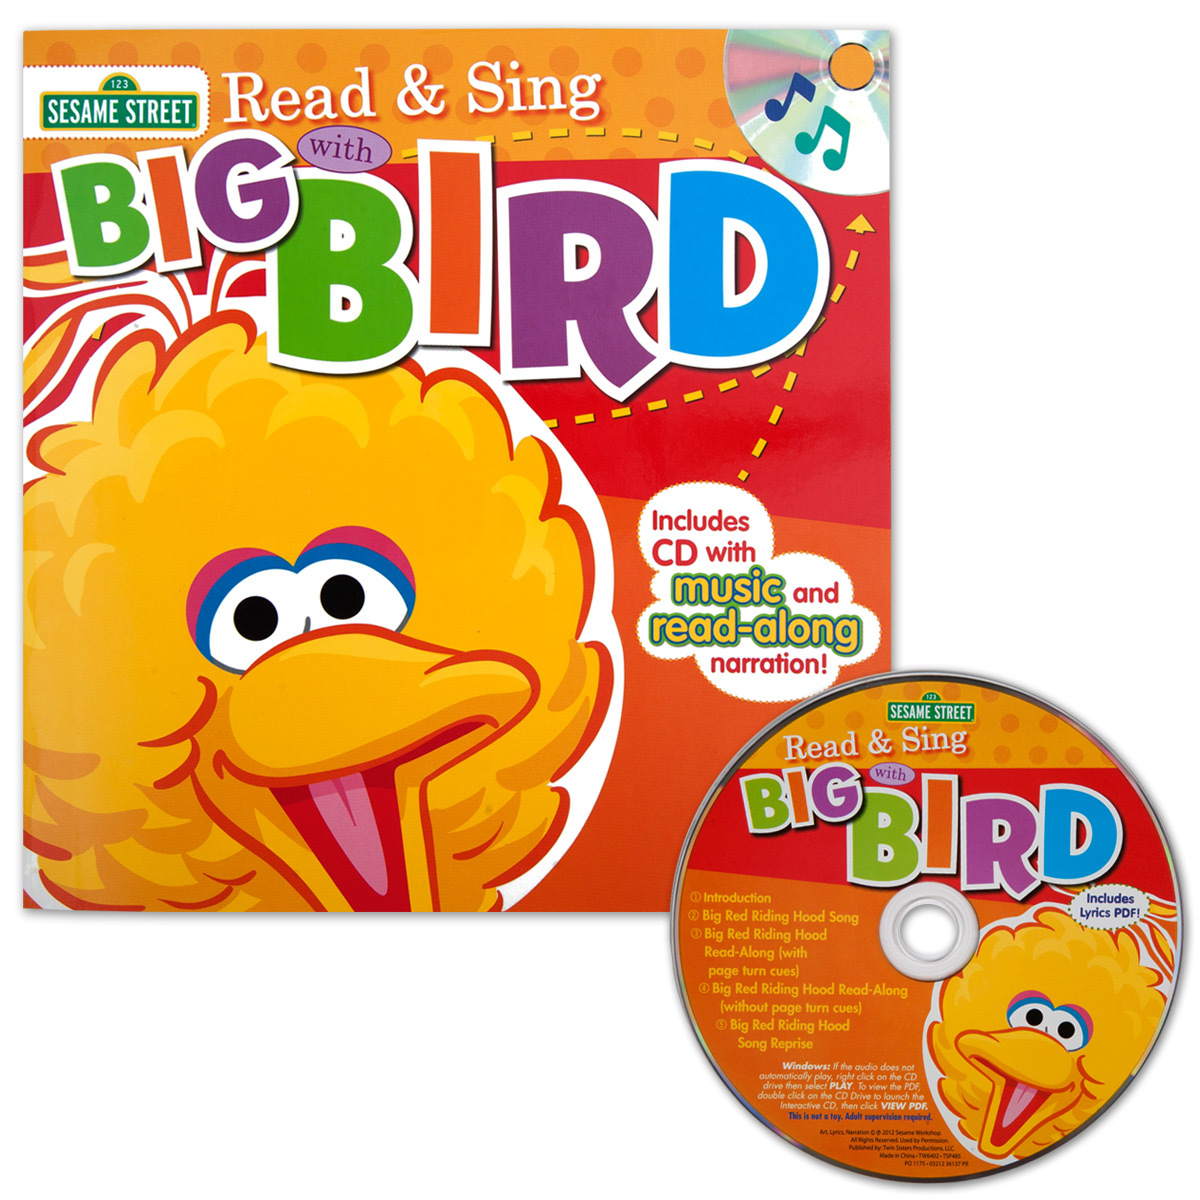 Sesame Street Read & Sing with Big Bird CD